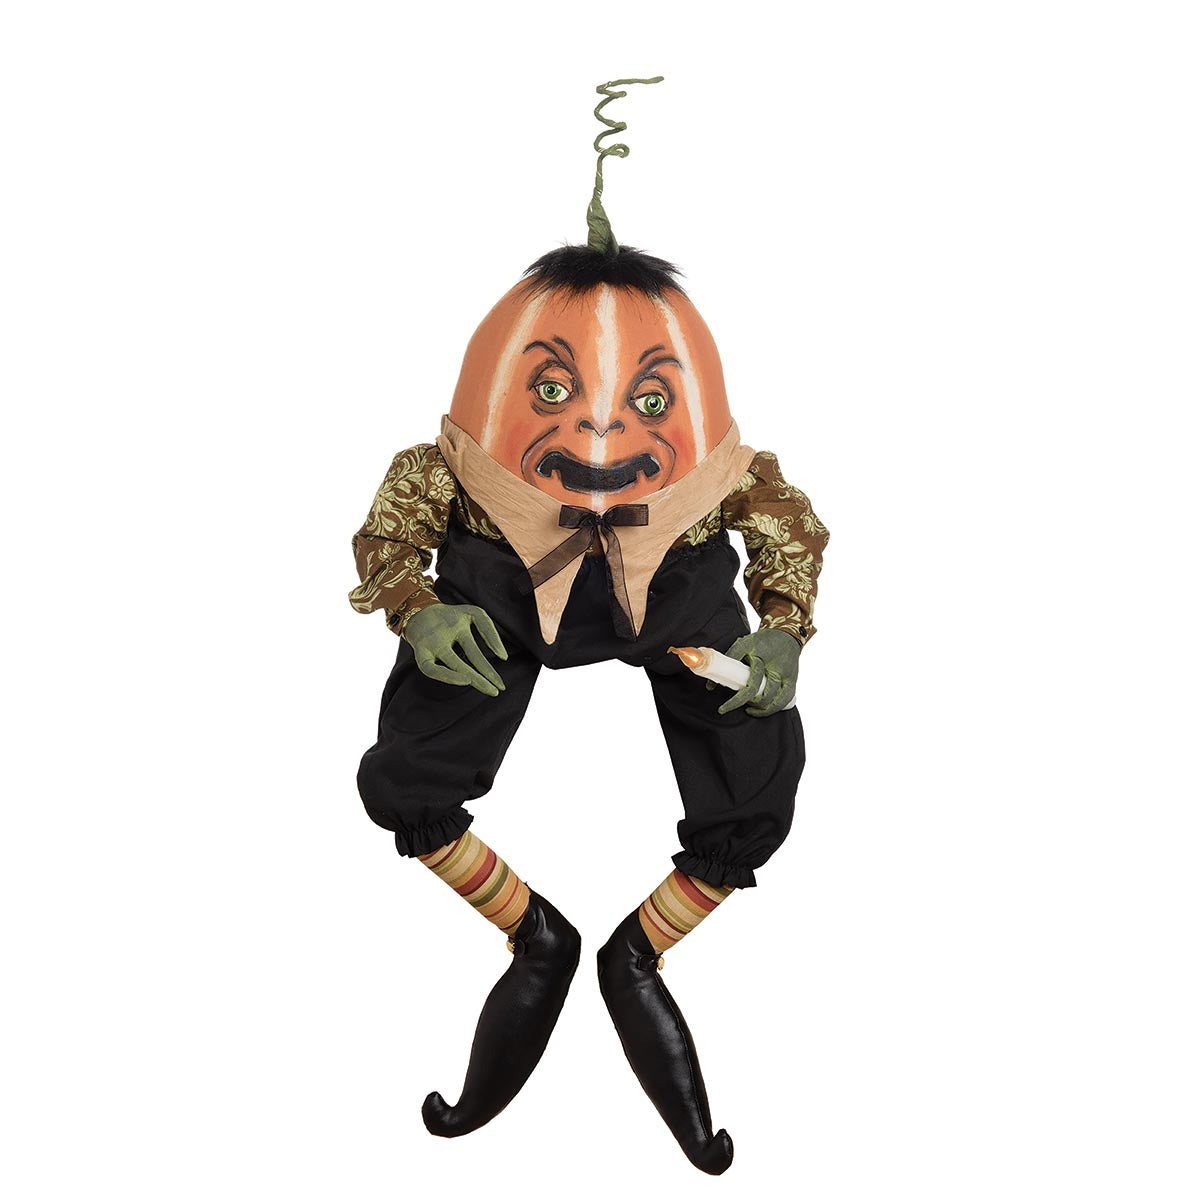 Joe Spencer Obadiah Pumpkin Head Doll